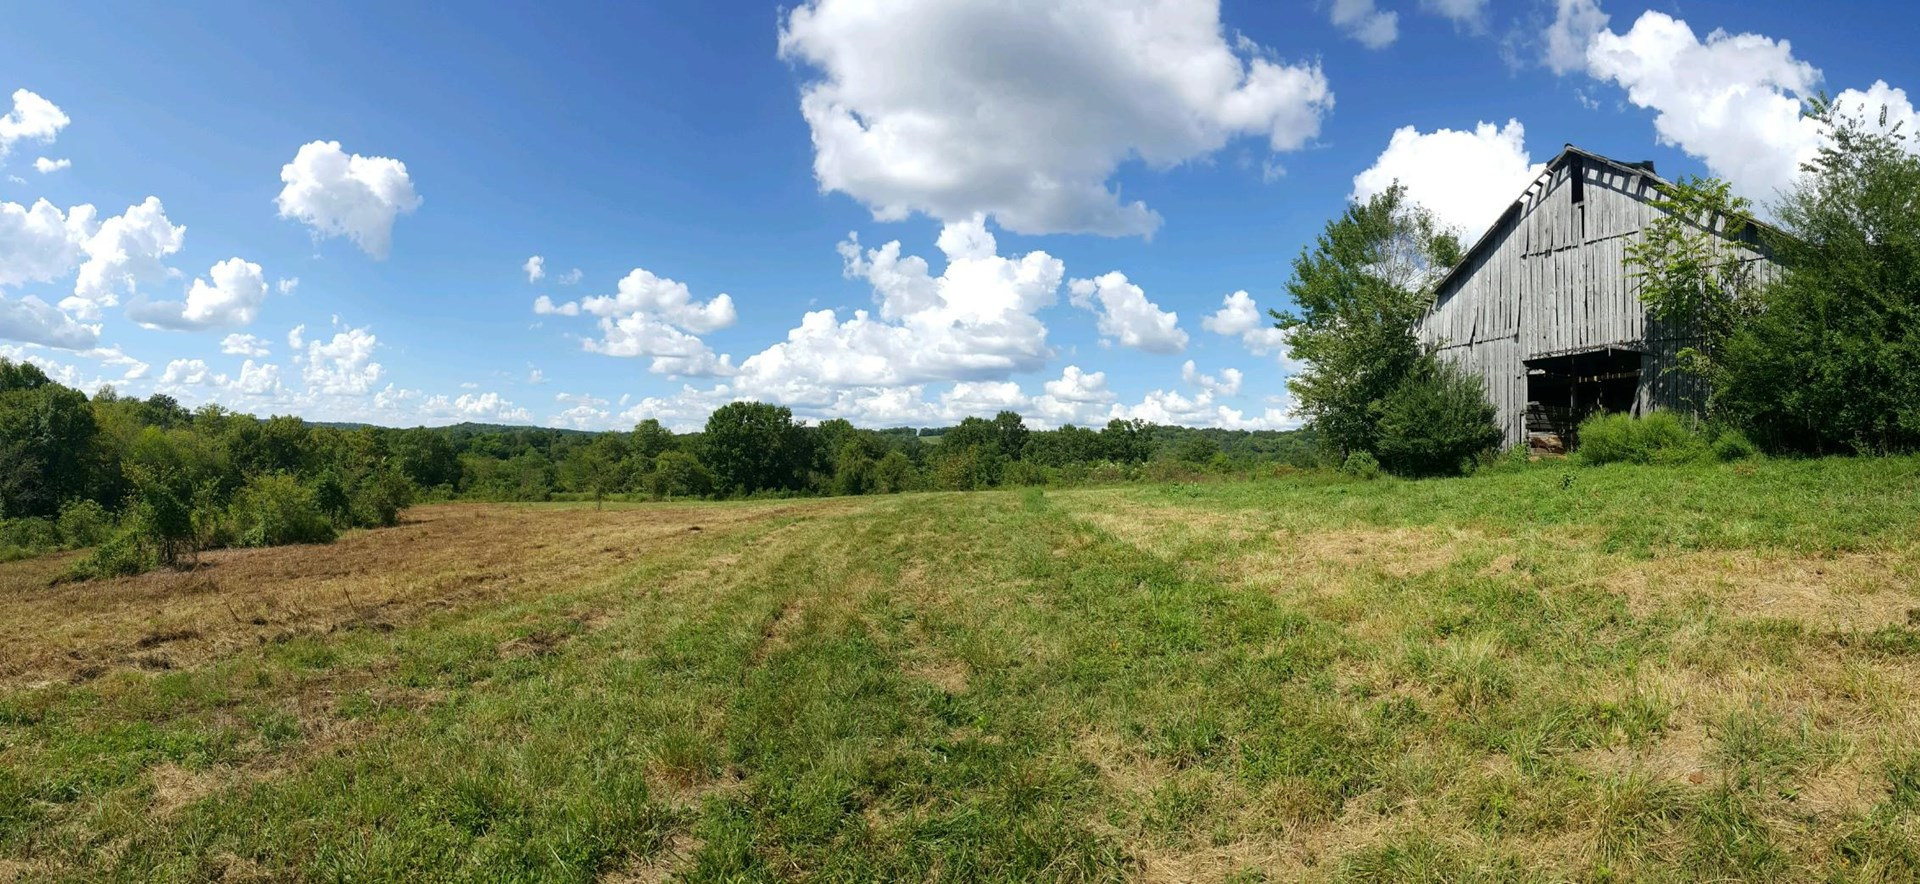 162 Acres to be Auctioned